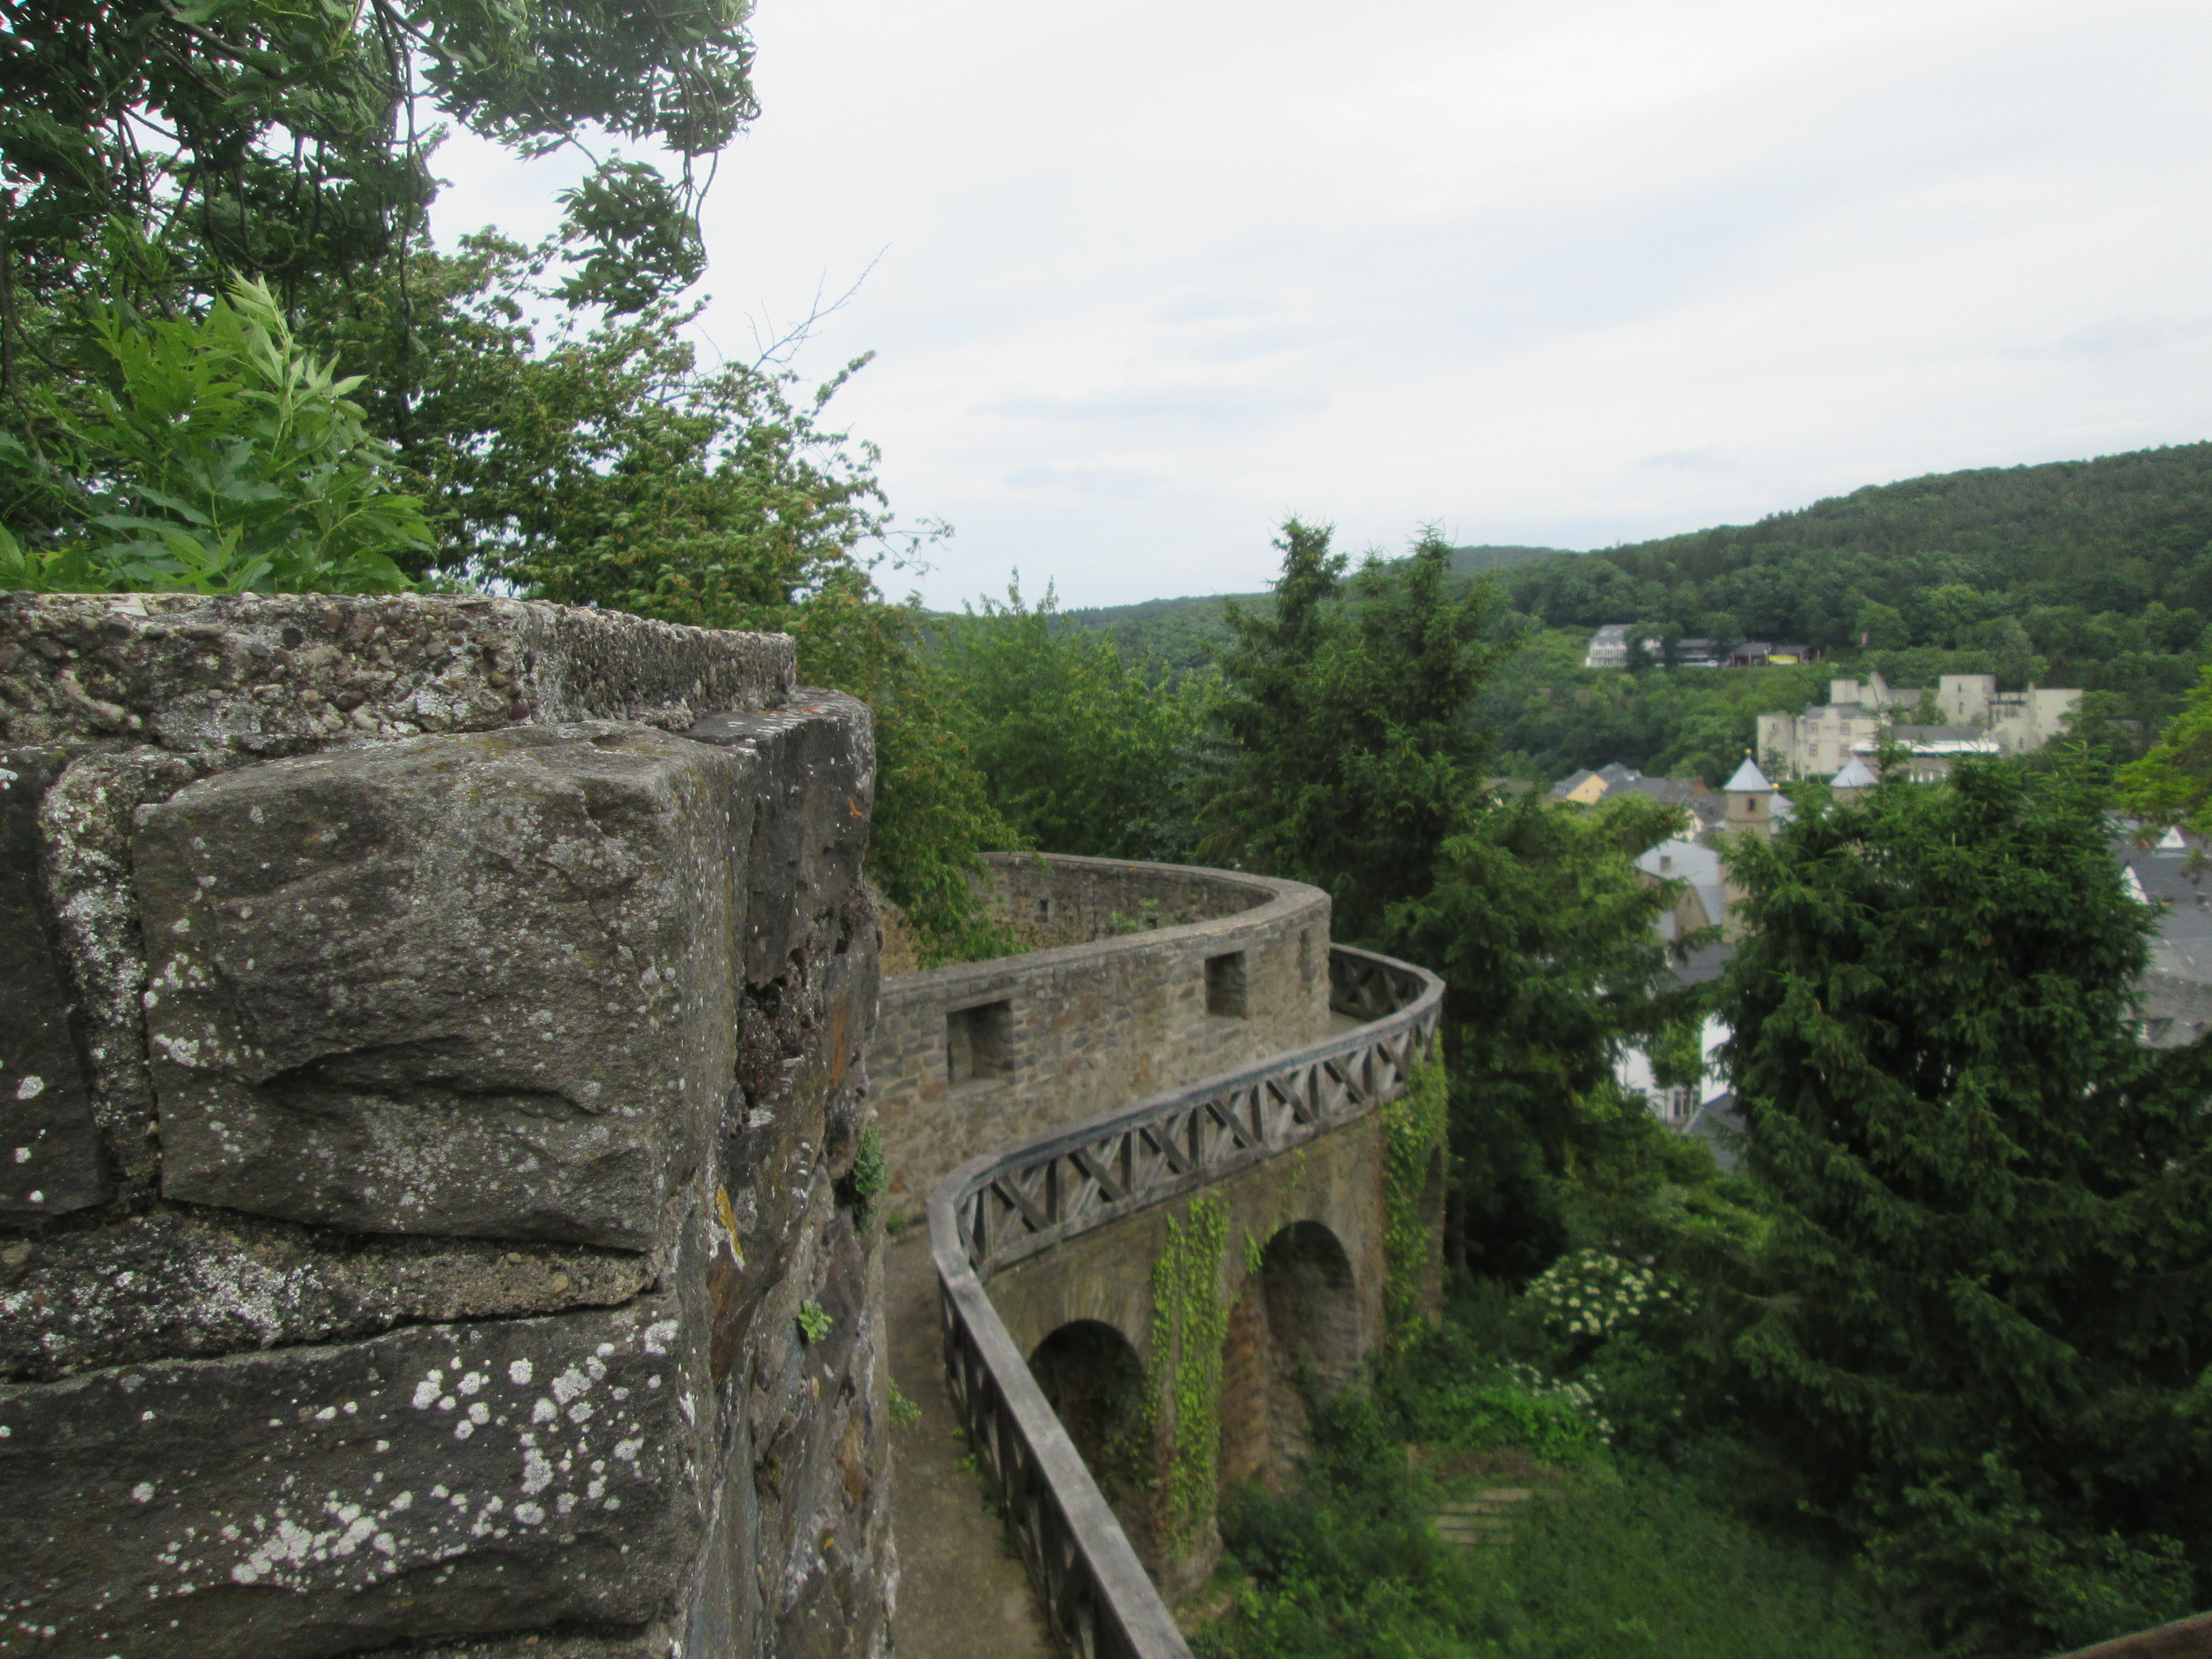 Walls surrounding Bad Münstereifel with the town in the background